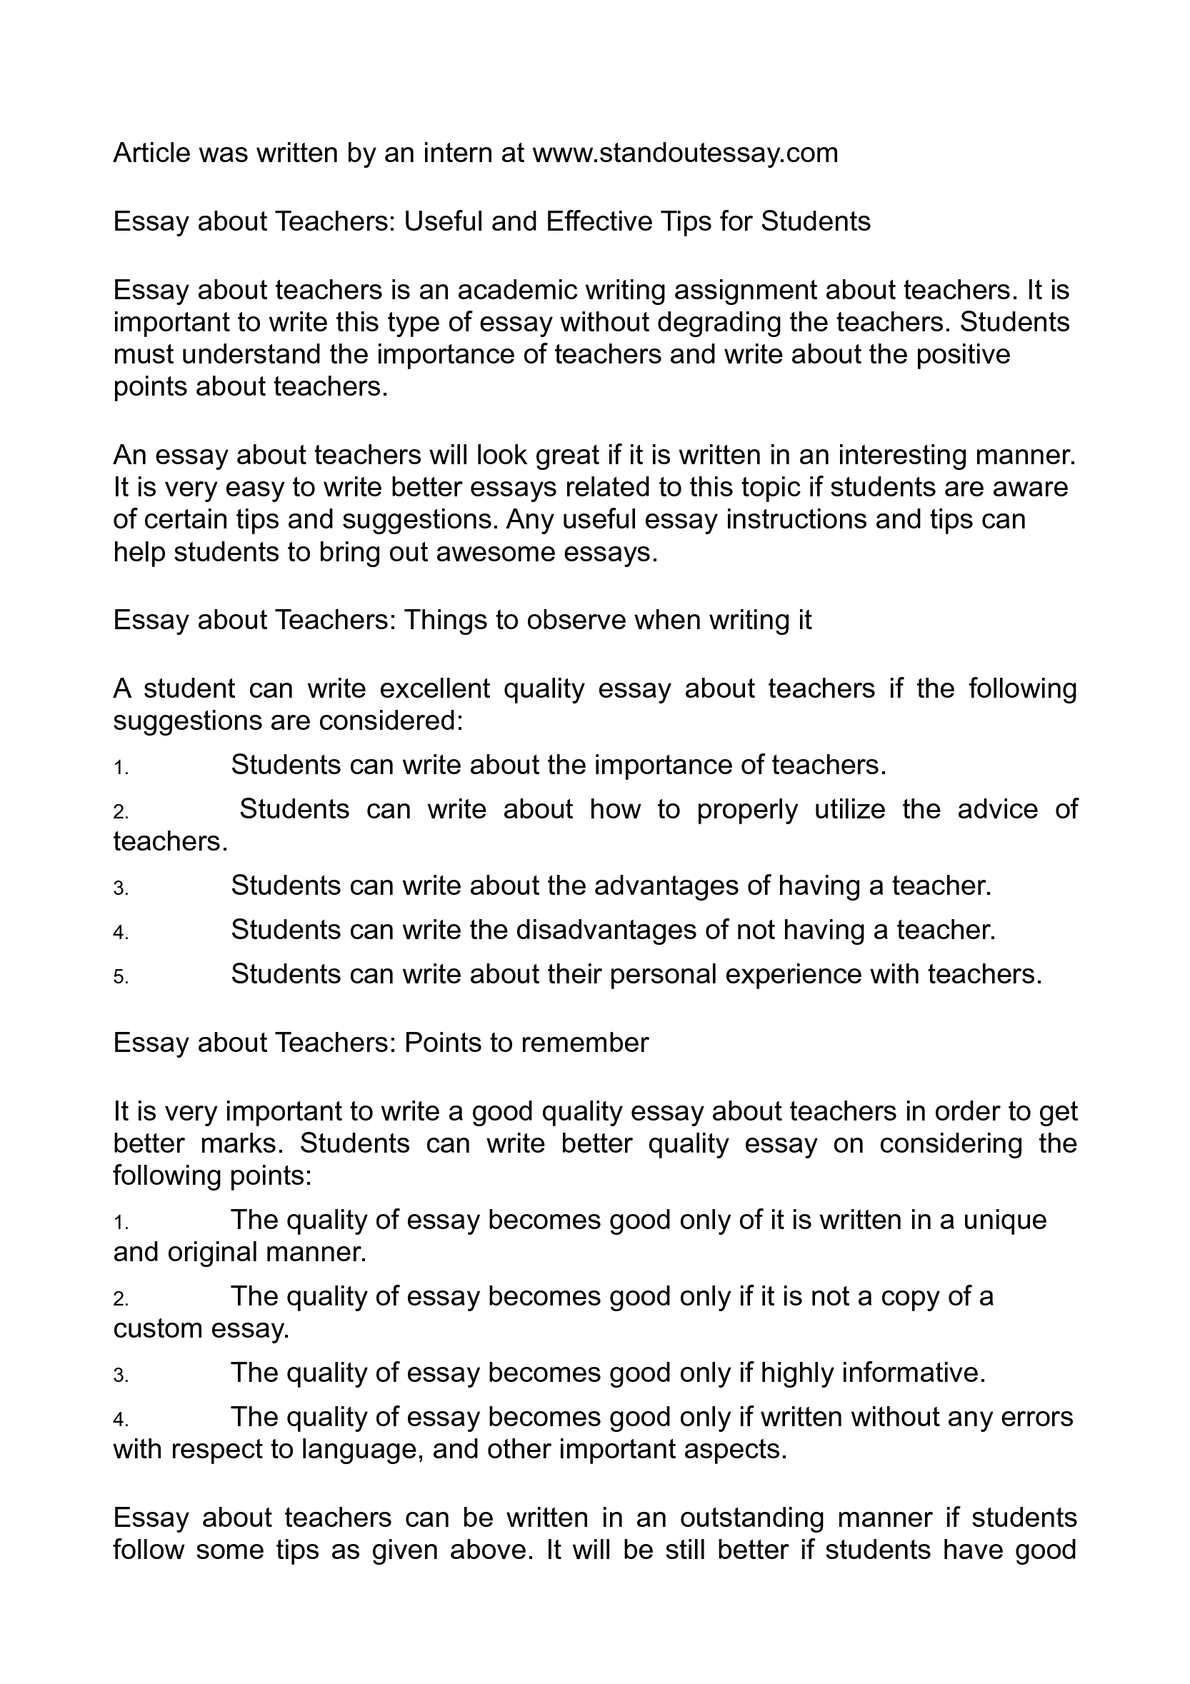 calameo essay about teachers useful and effective tips for students